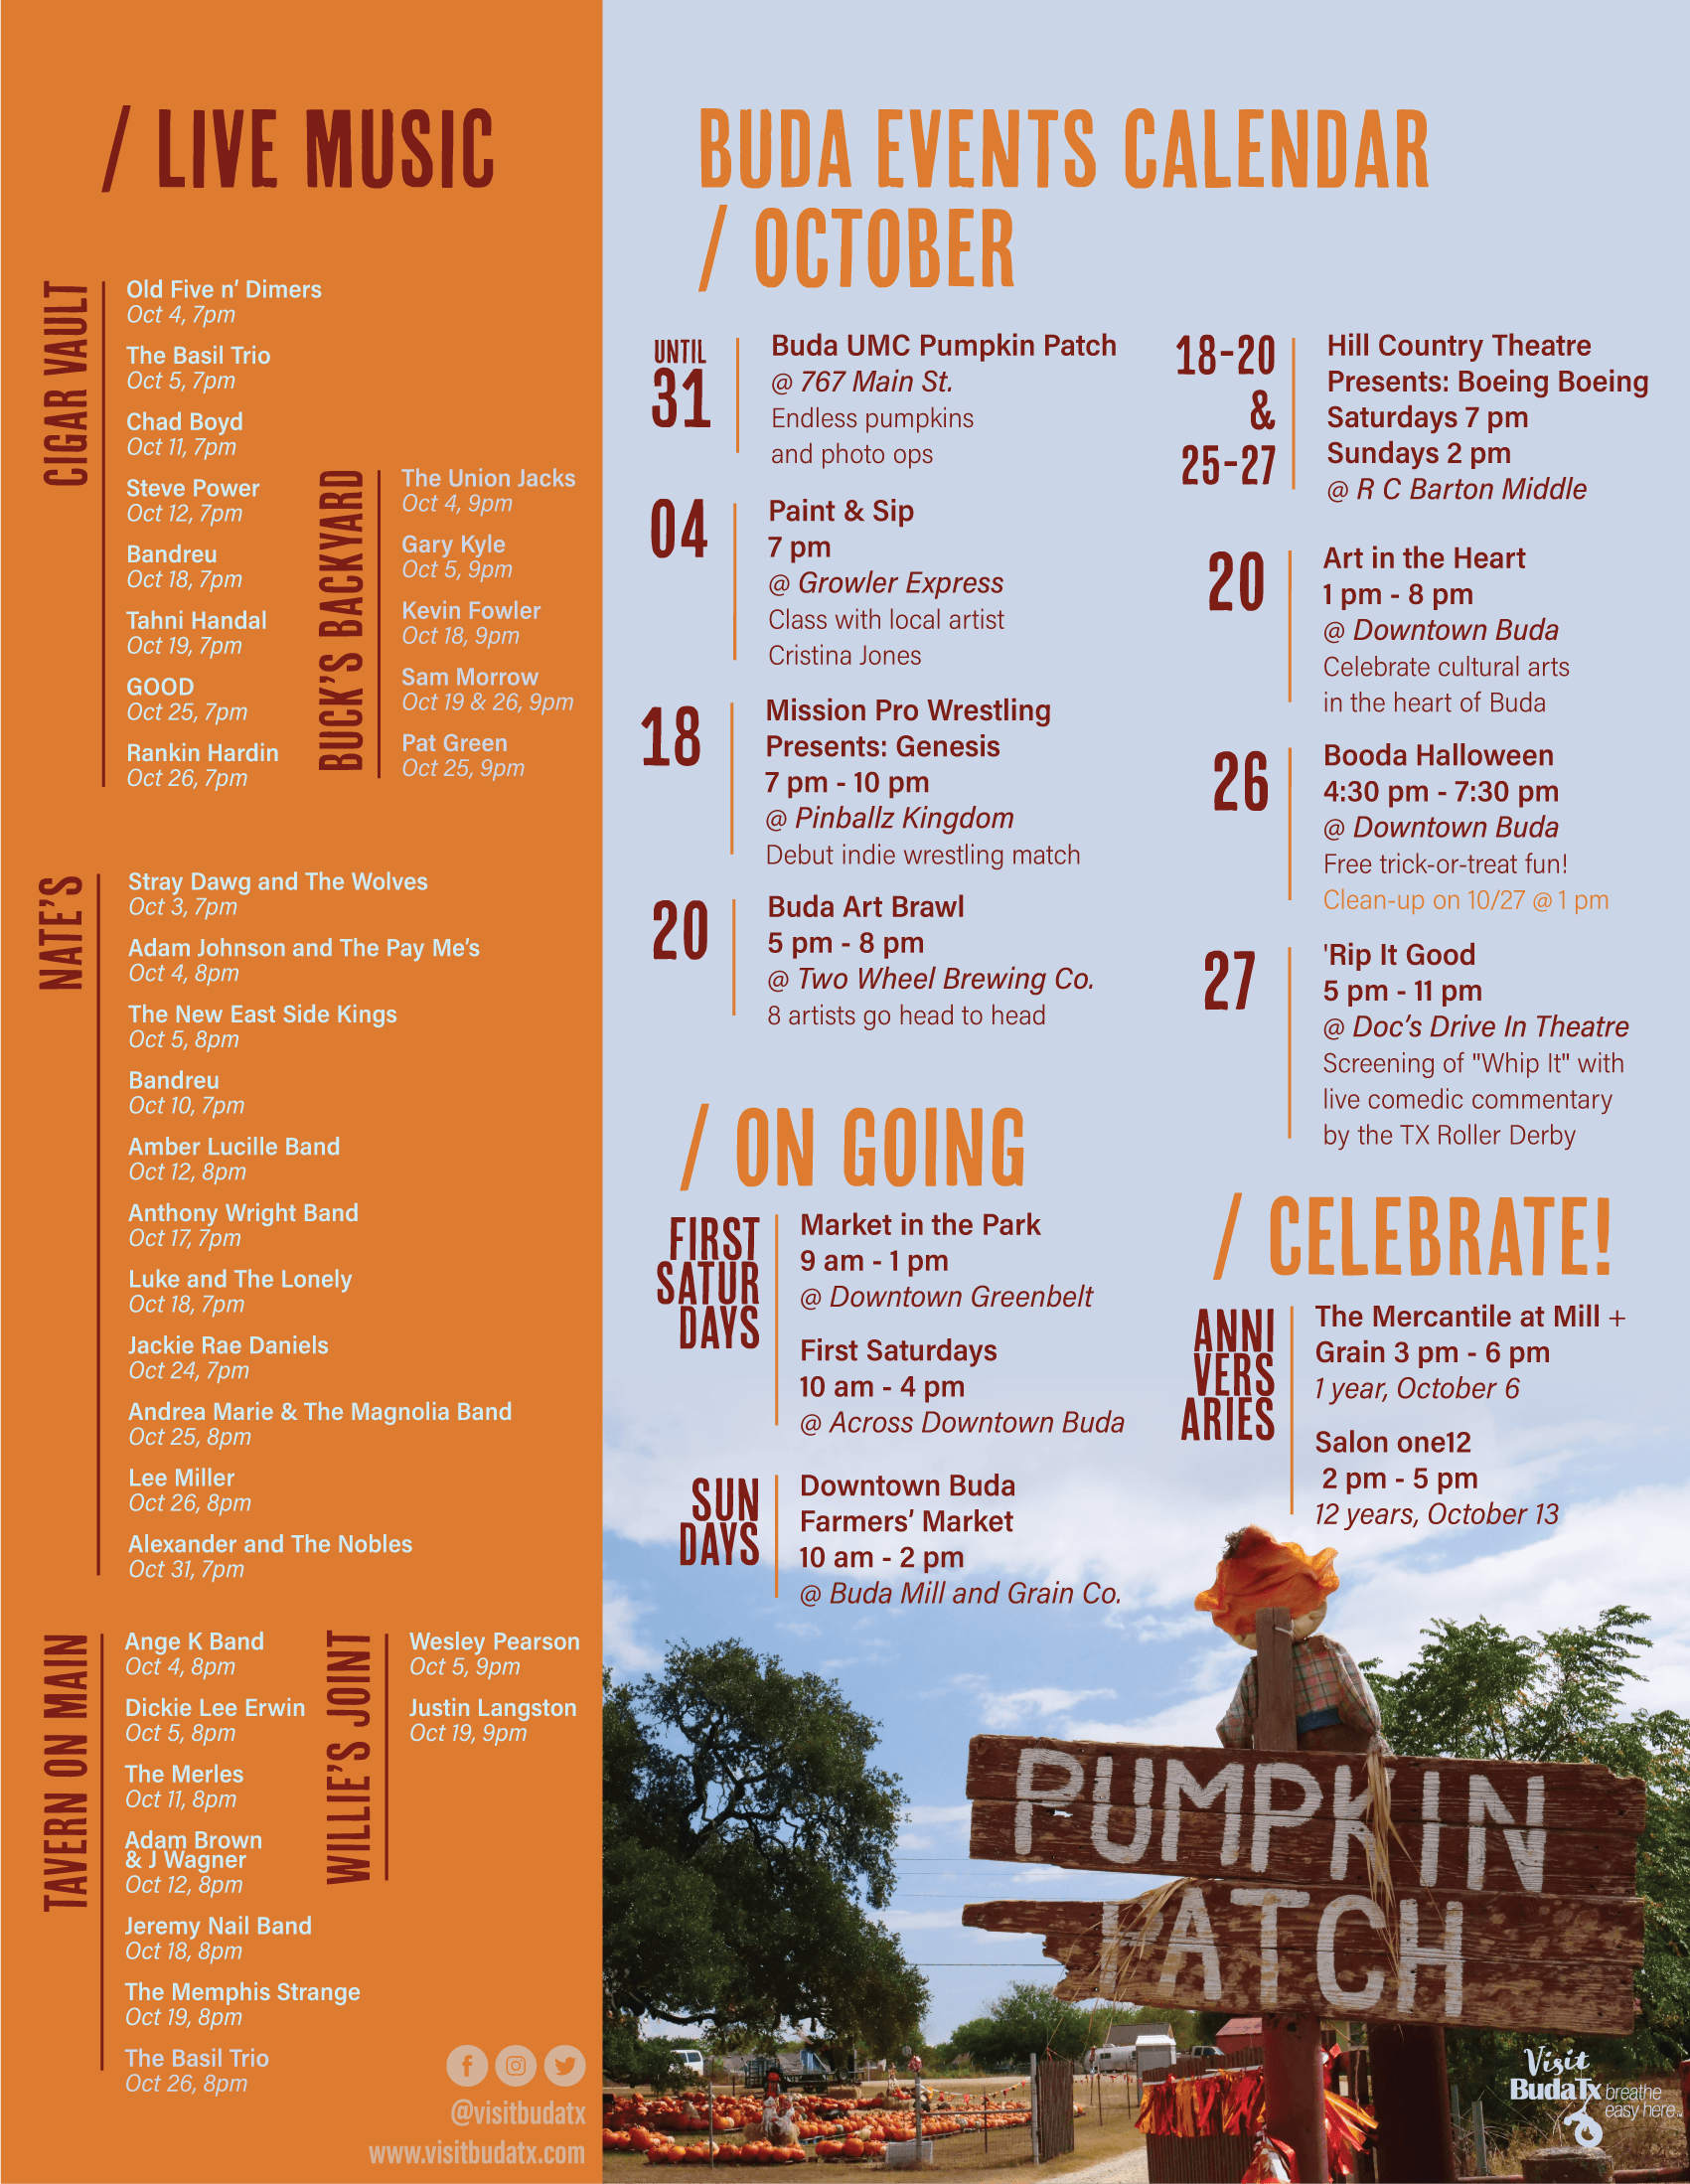 2019 October events calendar in Buda, Tx